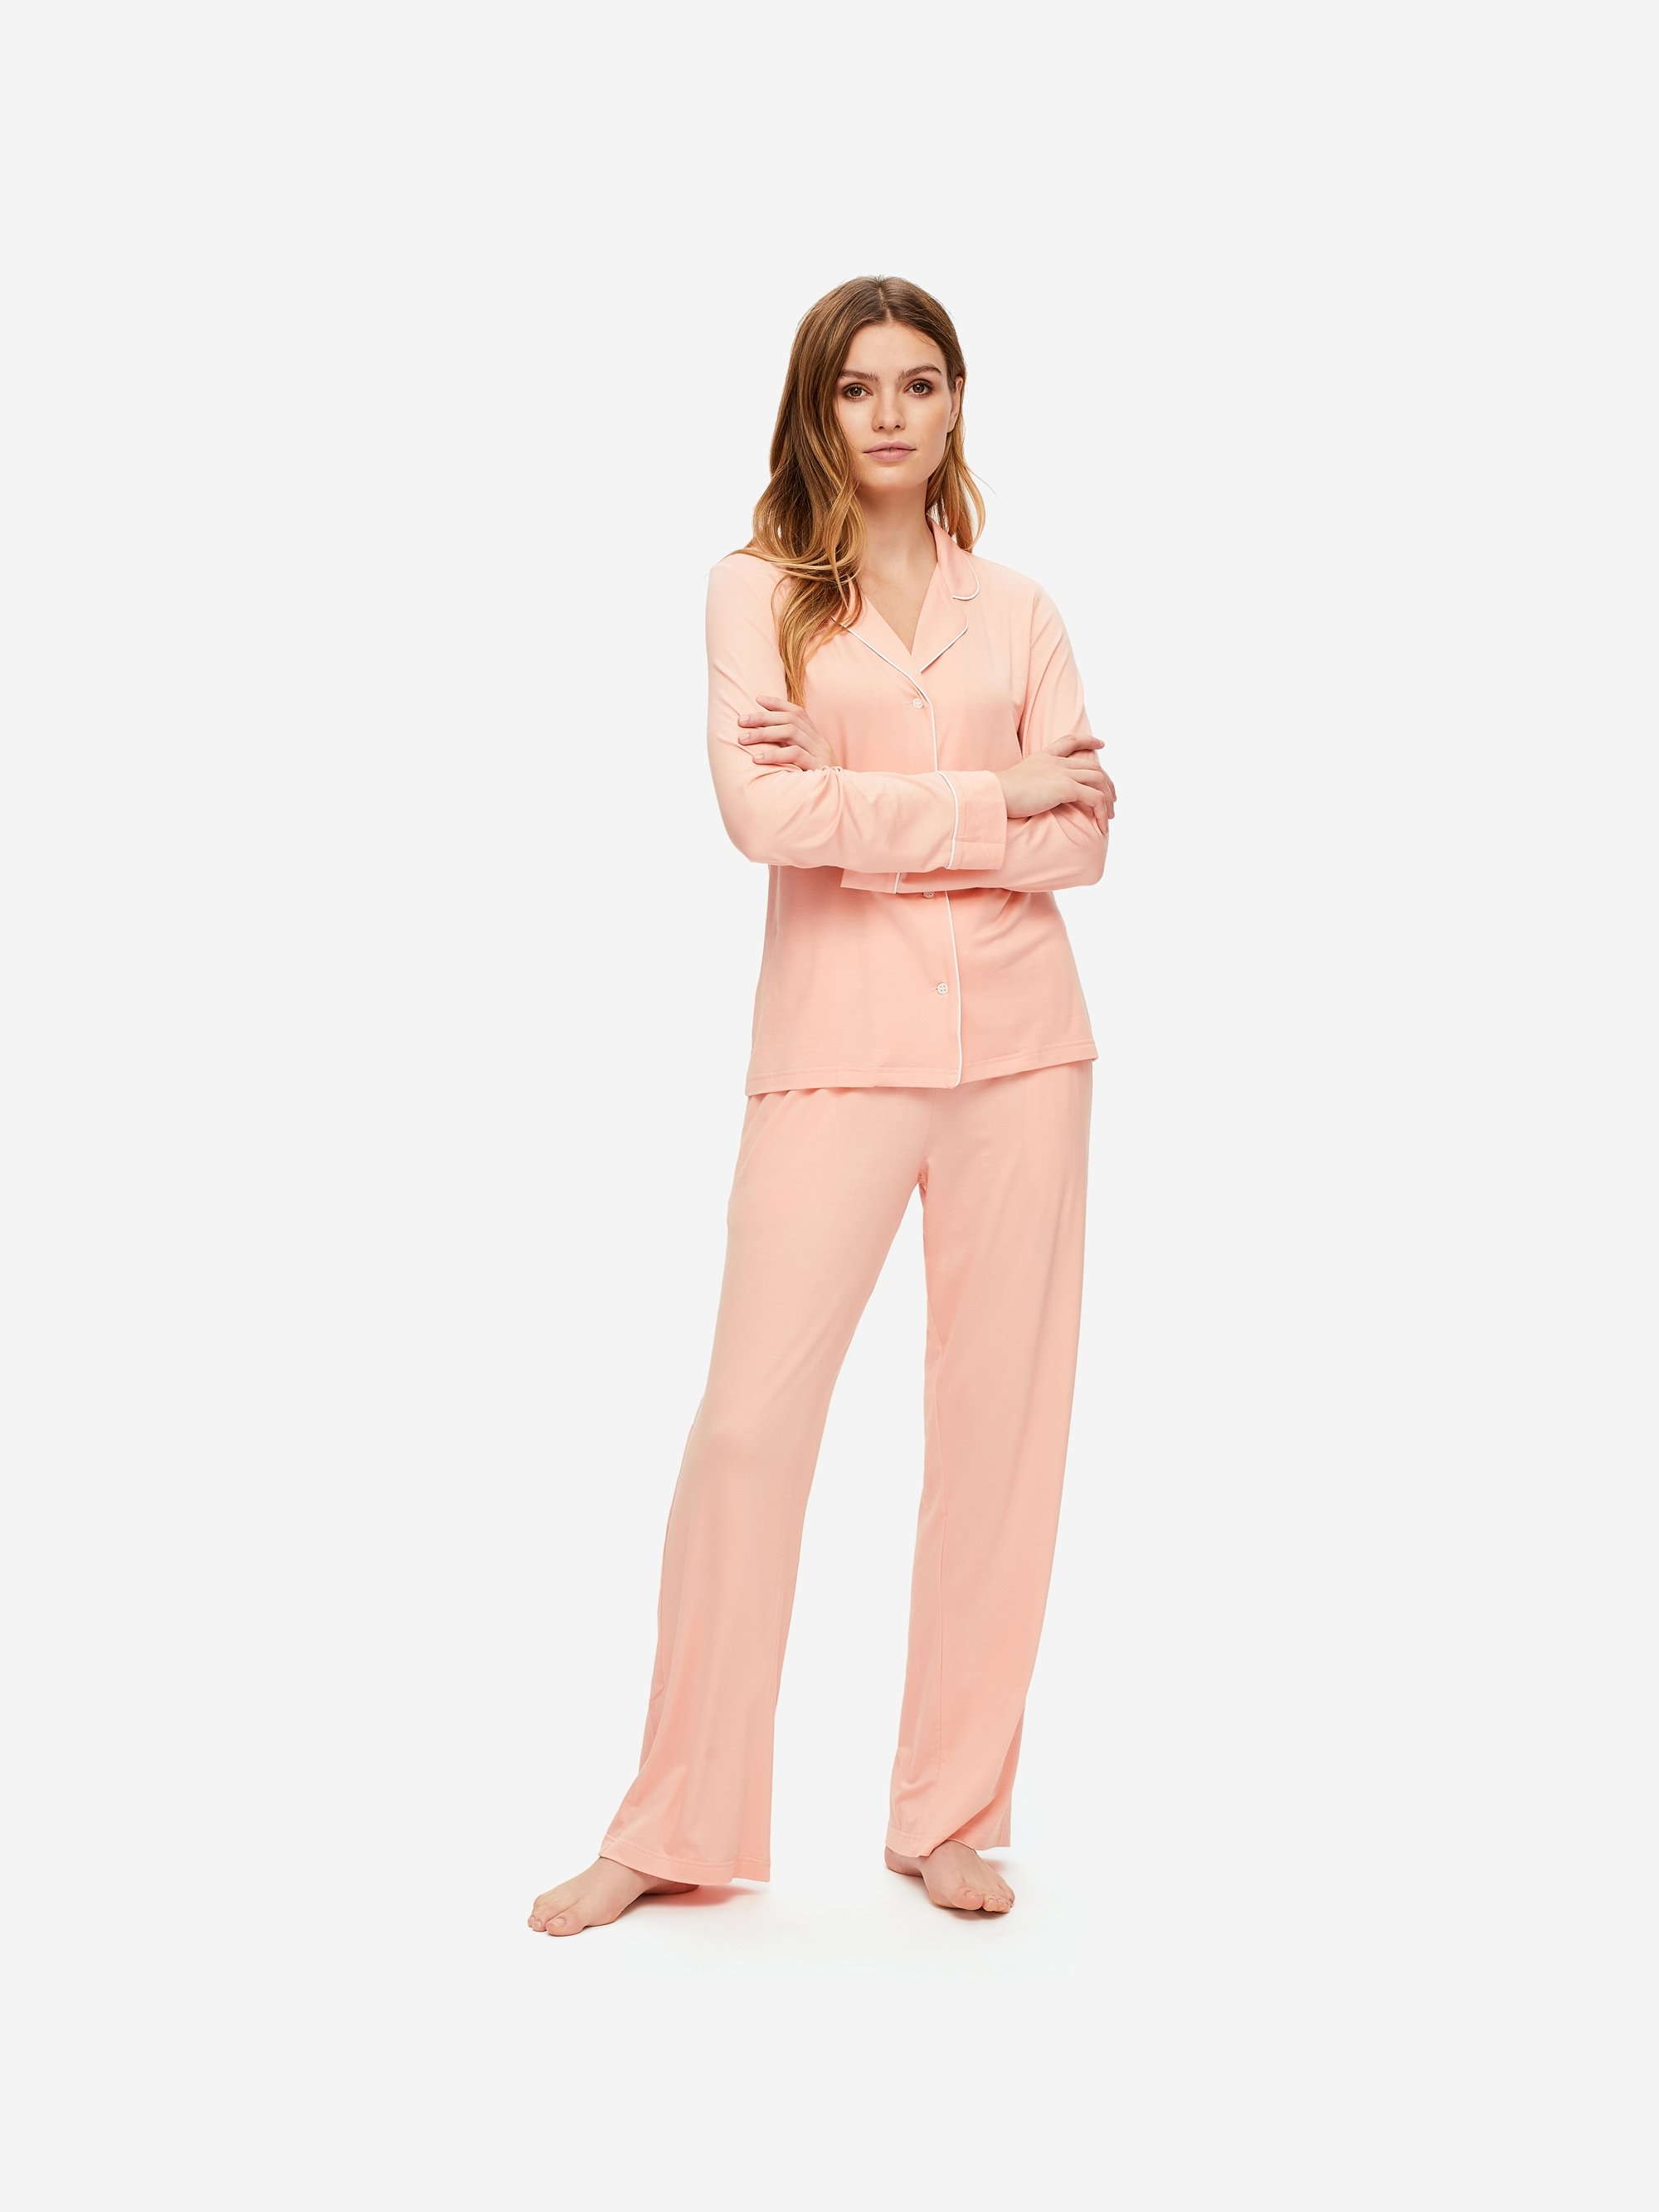 Women's Jersey Pyjamas Lara Micro Modal Stretch Peach